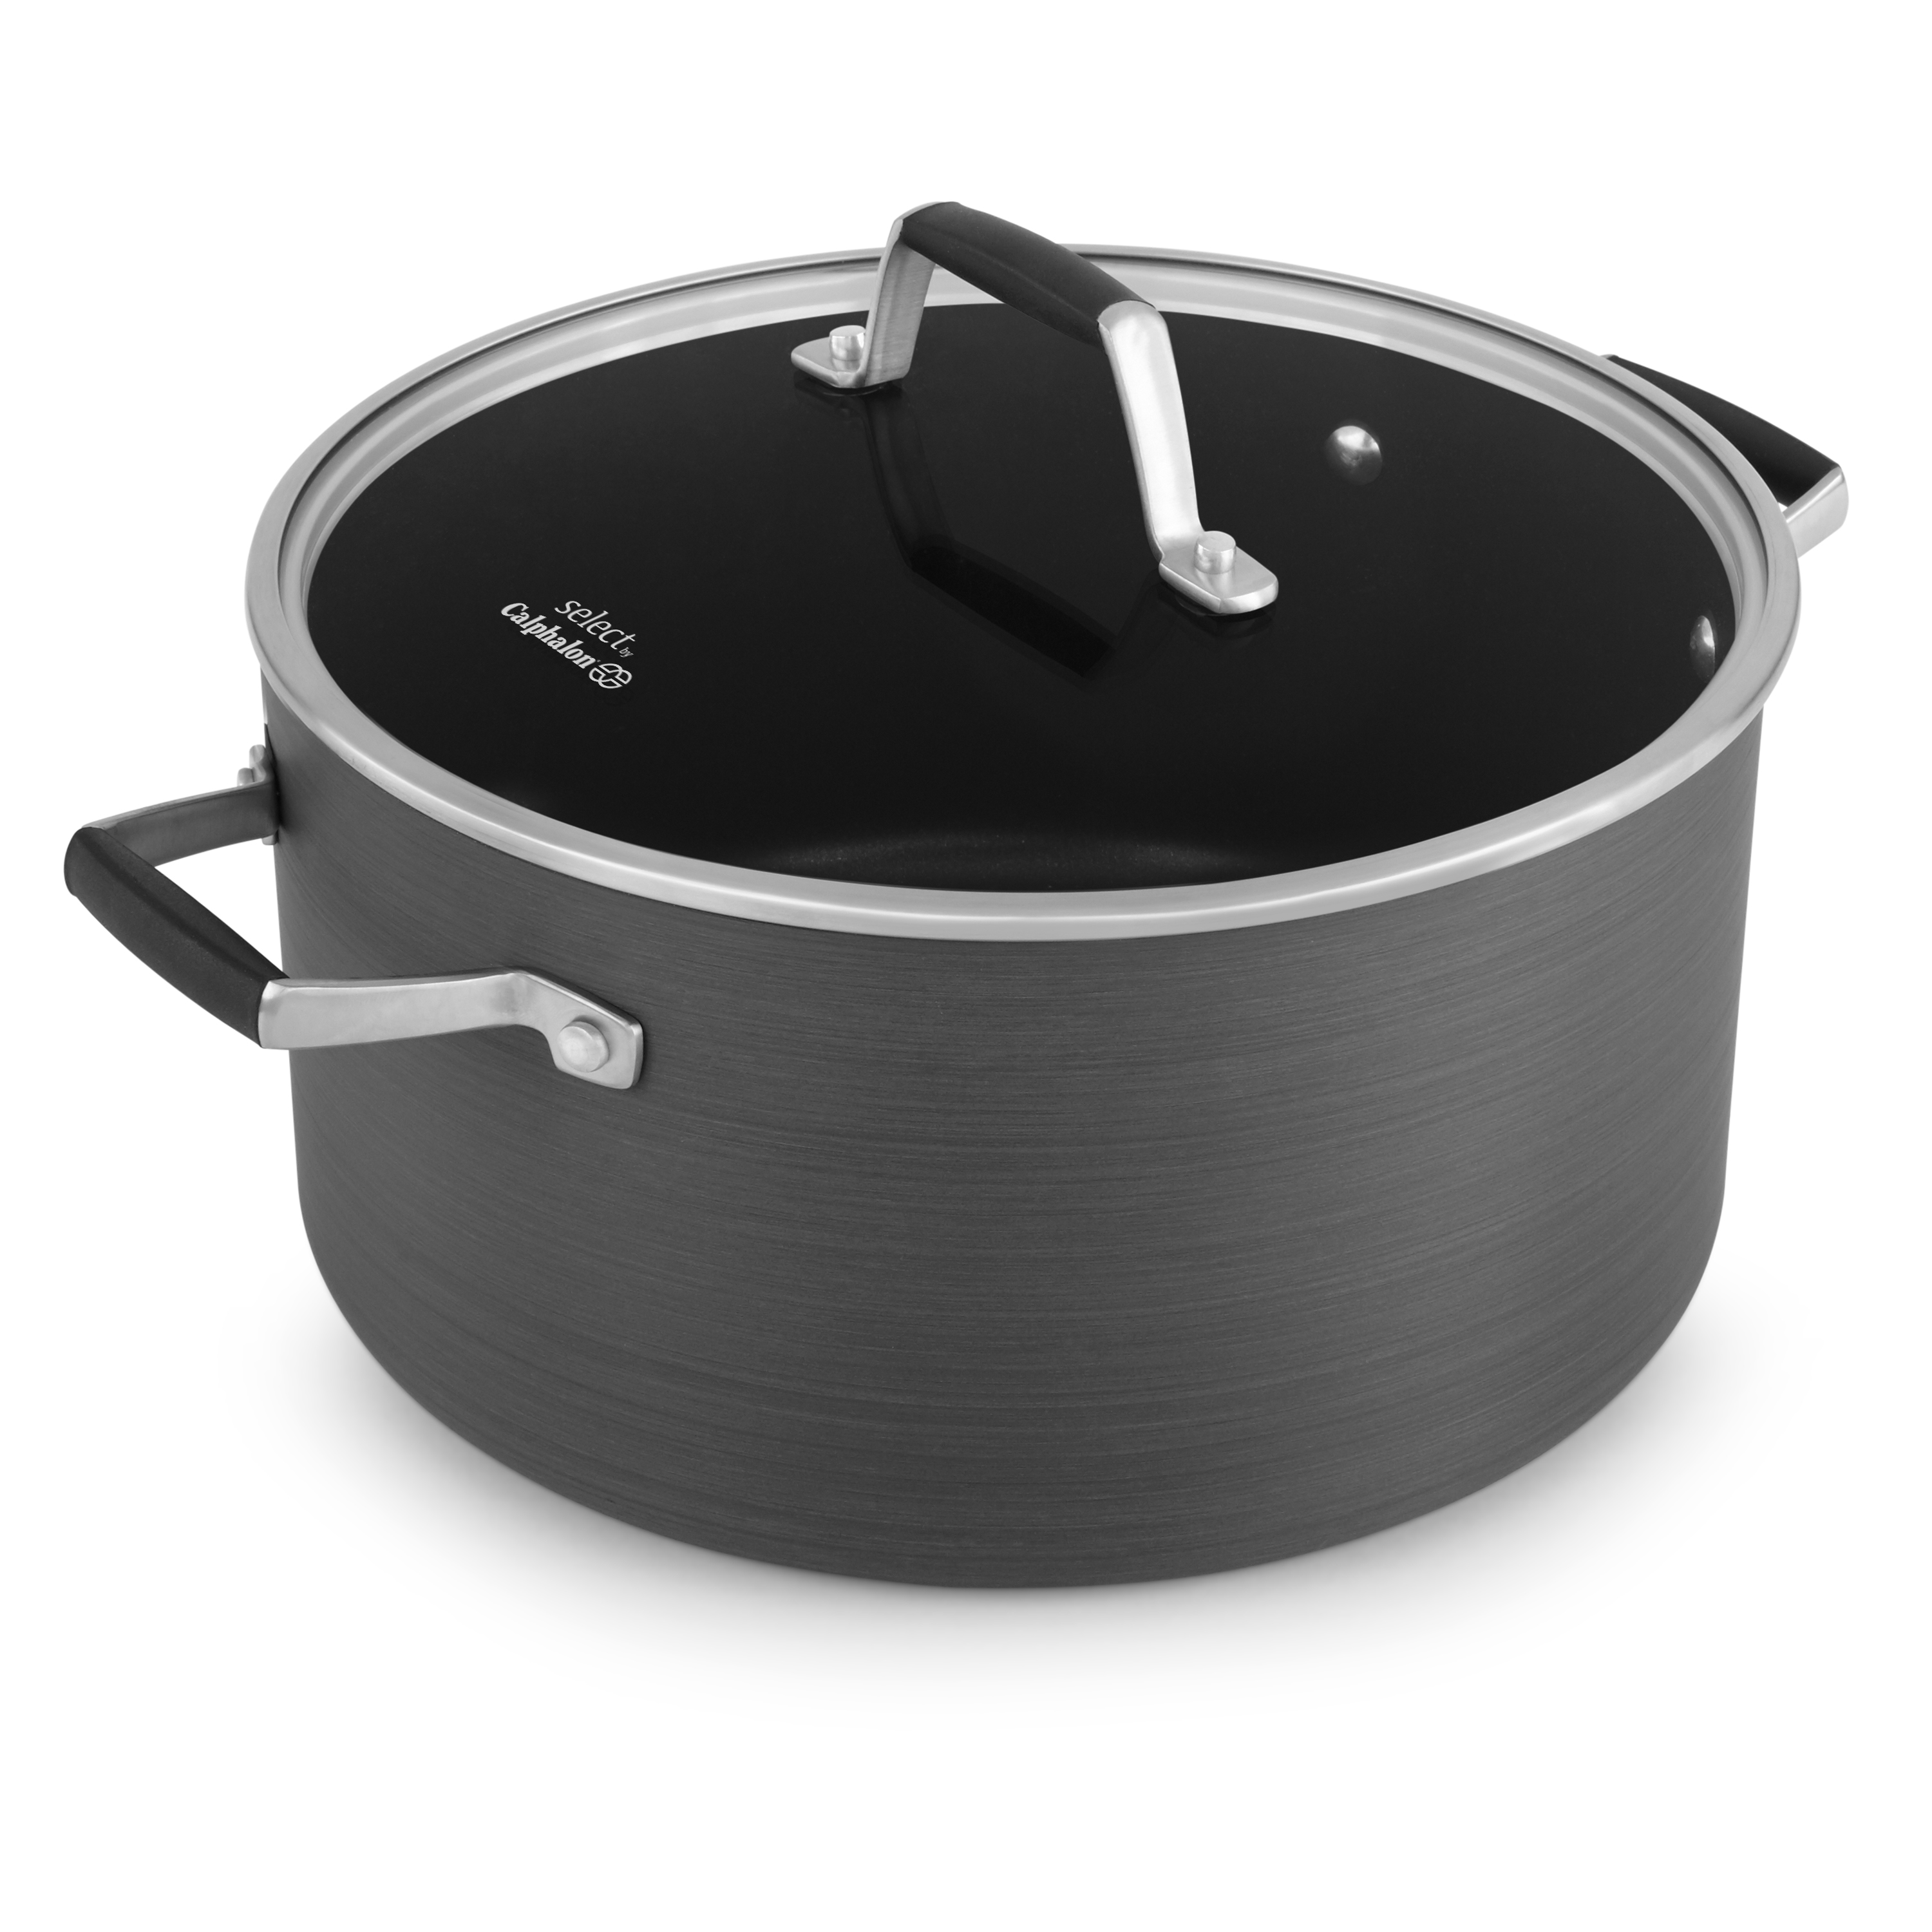 Calphalon Select Hard Anodized 8 Quart Non-Stick Stock Pot with Cover, 1 Each